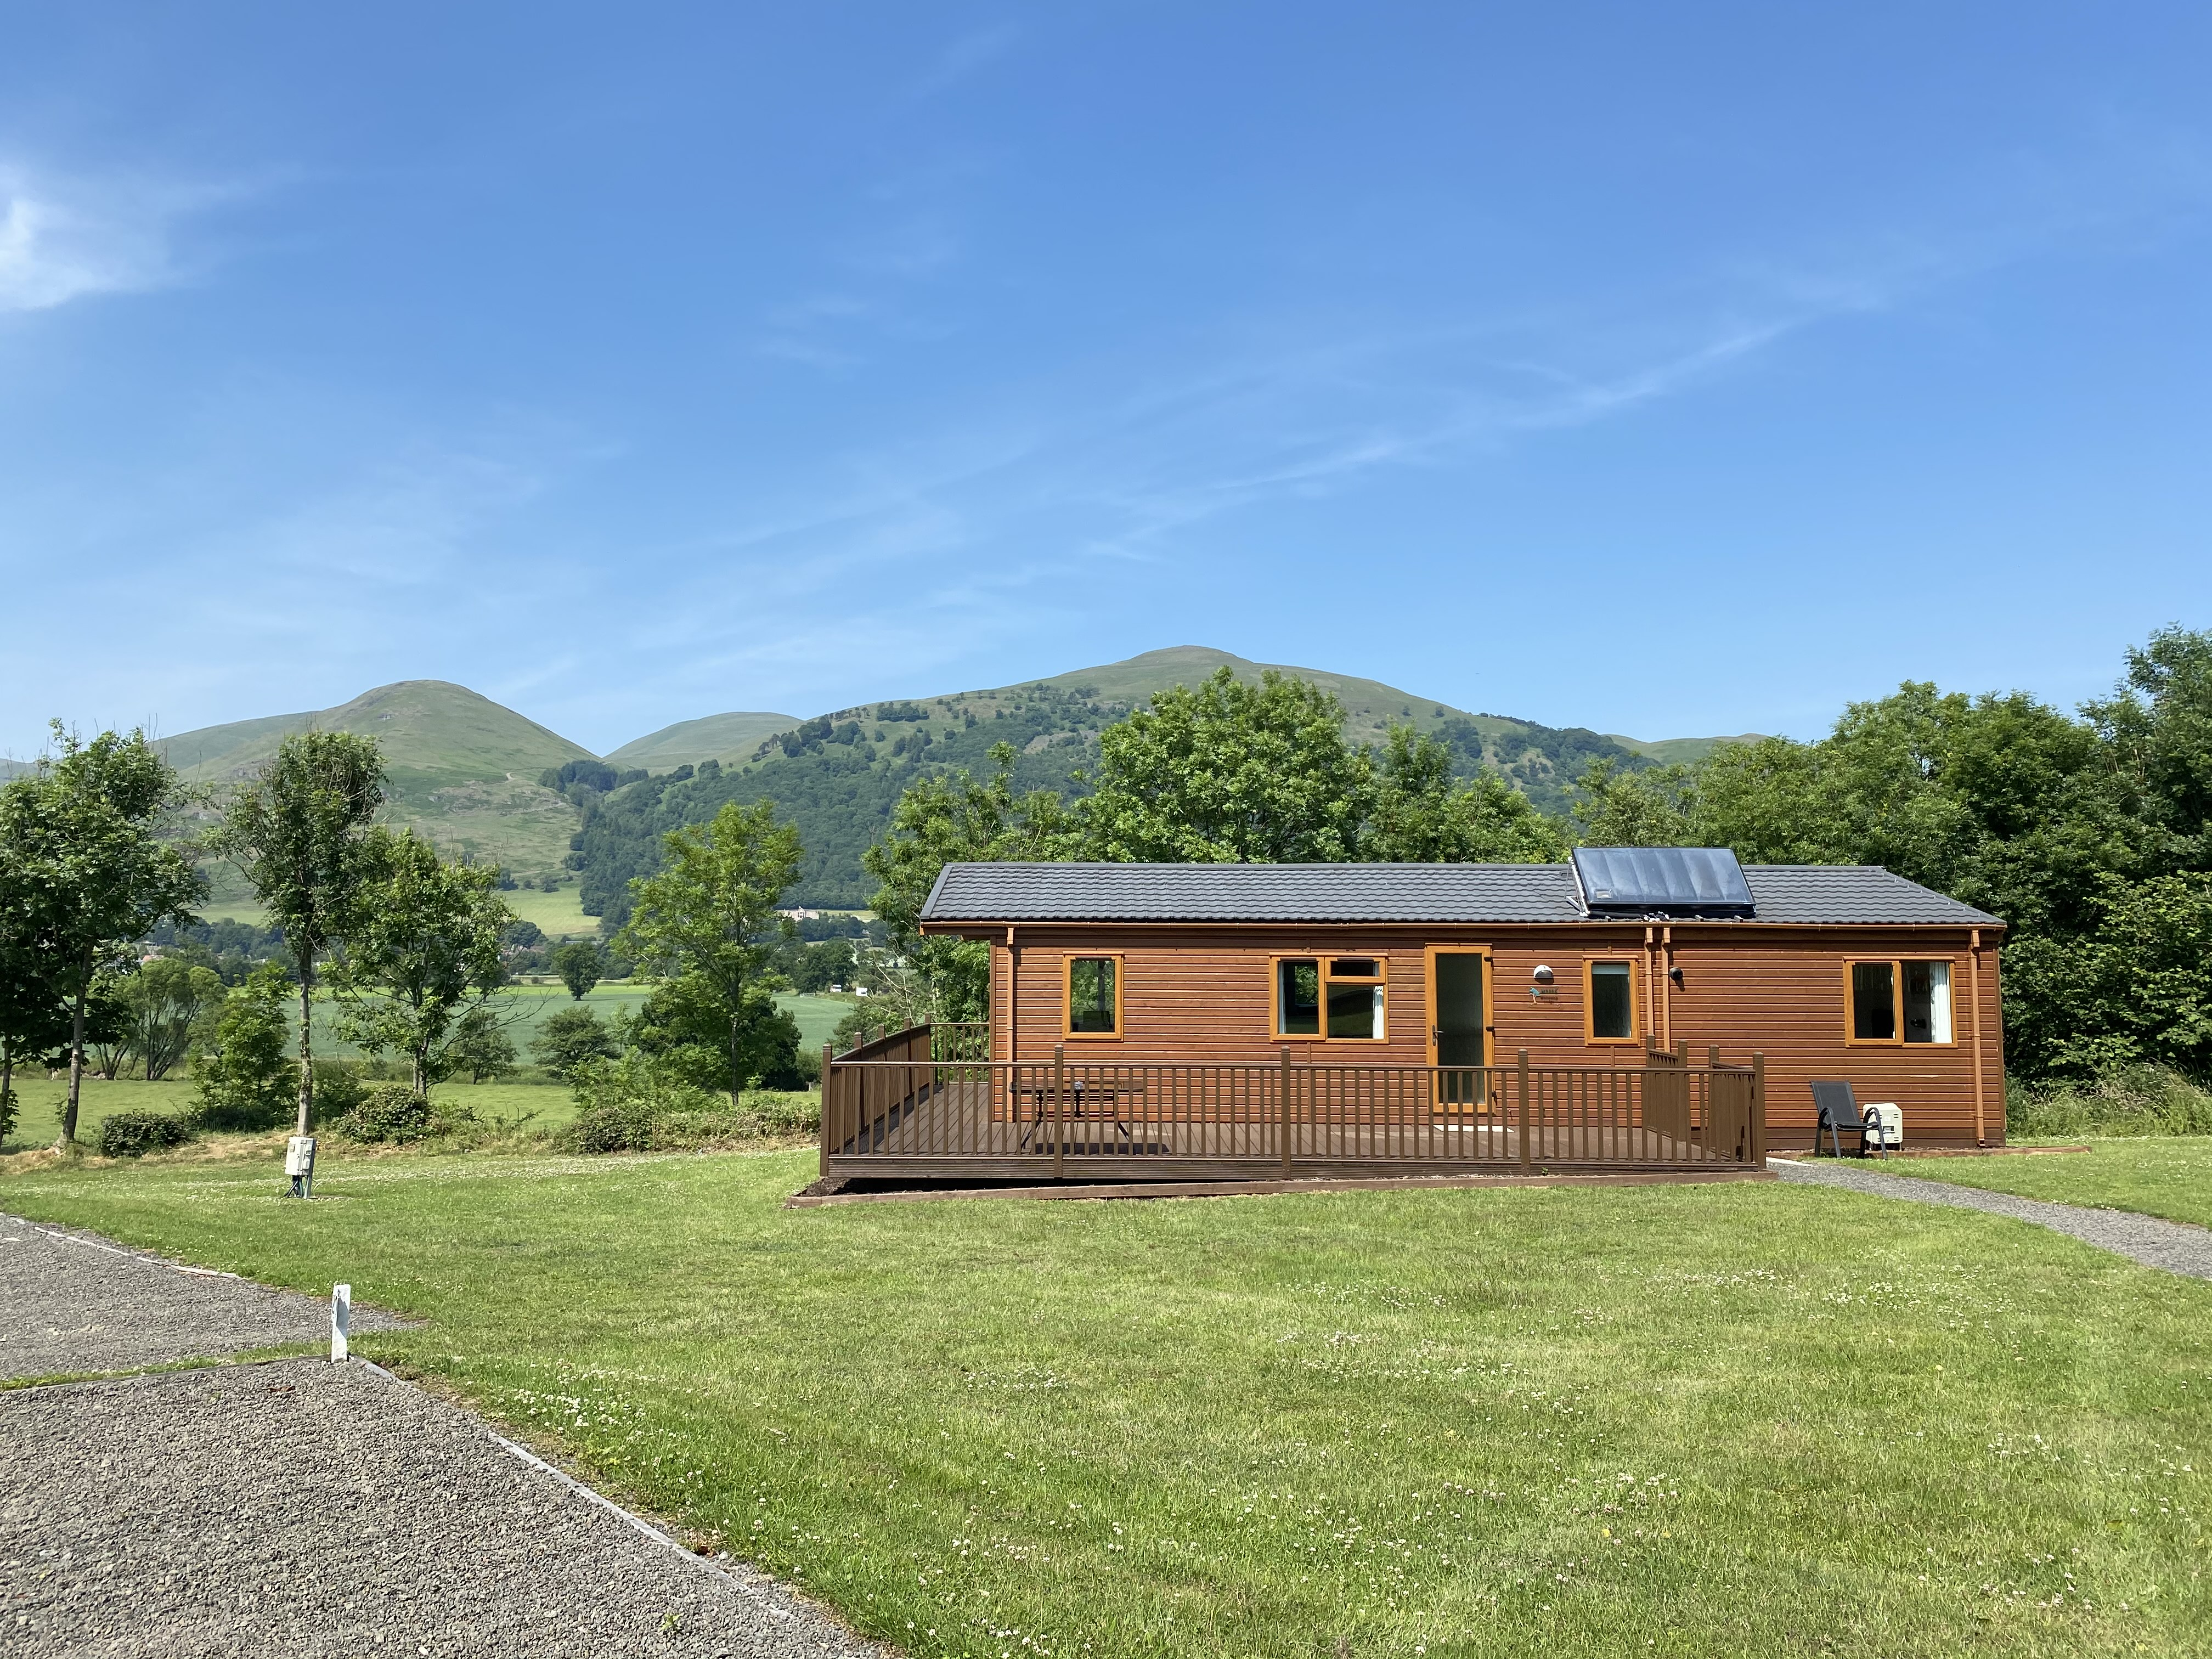 Self-catering Lodges for hire